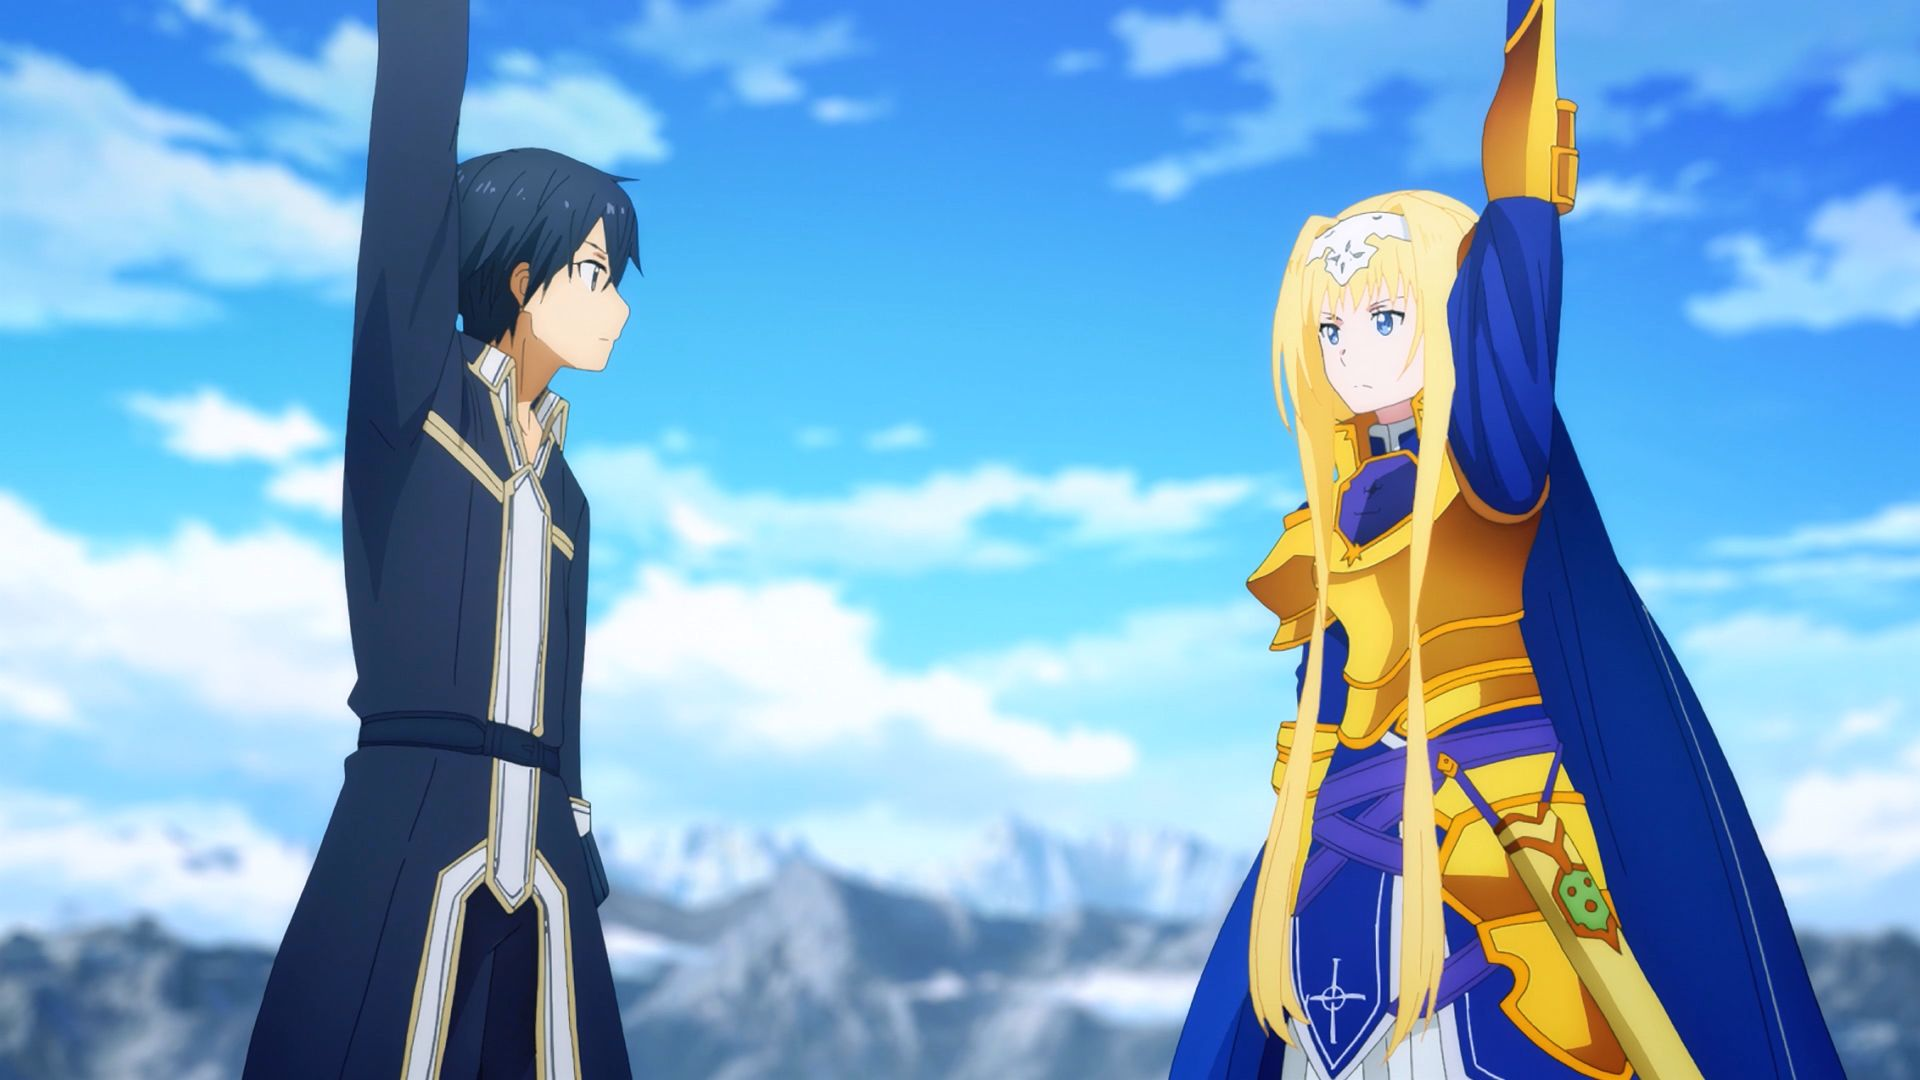 Sao Alicization 1920x1080 Wallpaper Teahub Io